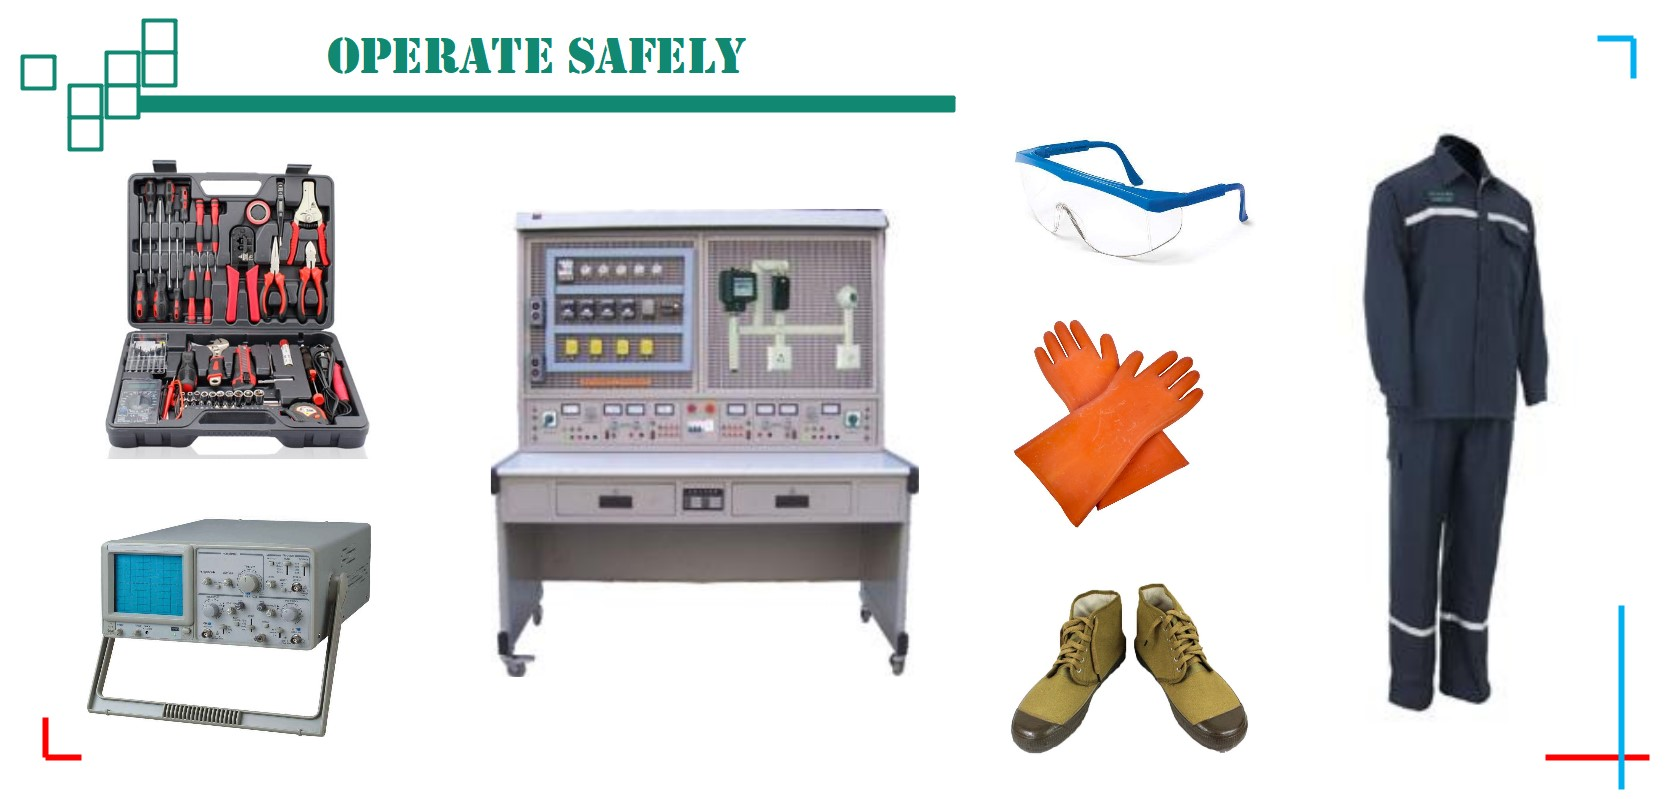 Safety precautions to operate safely. More details via sales@huimultd.com